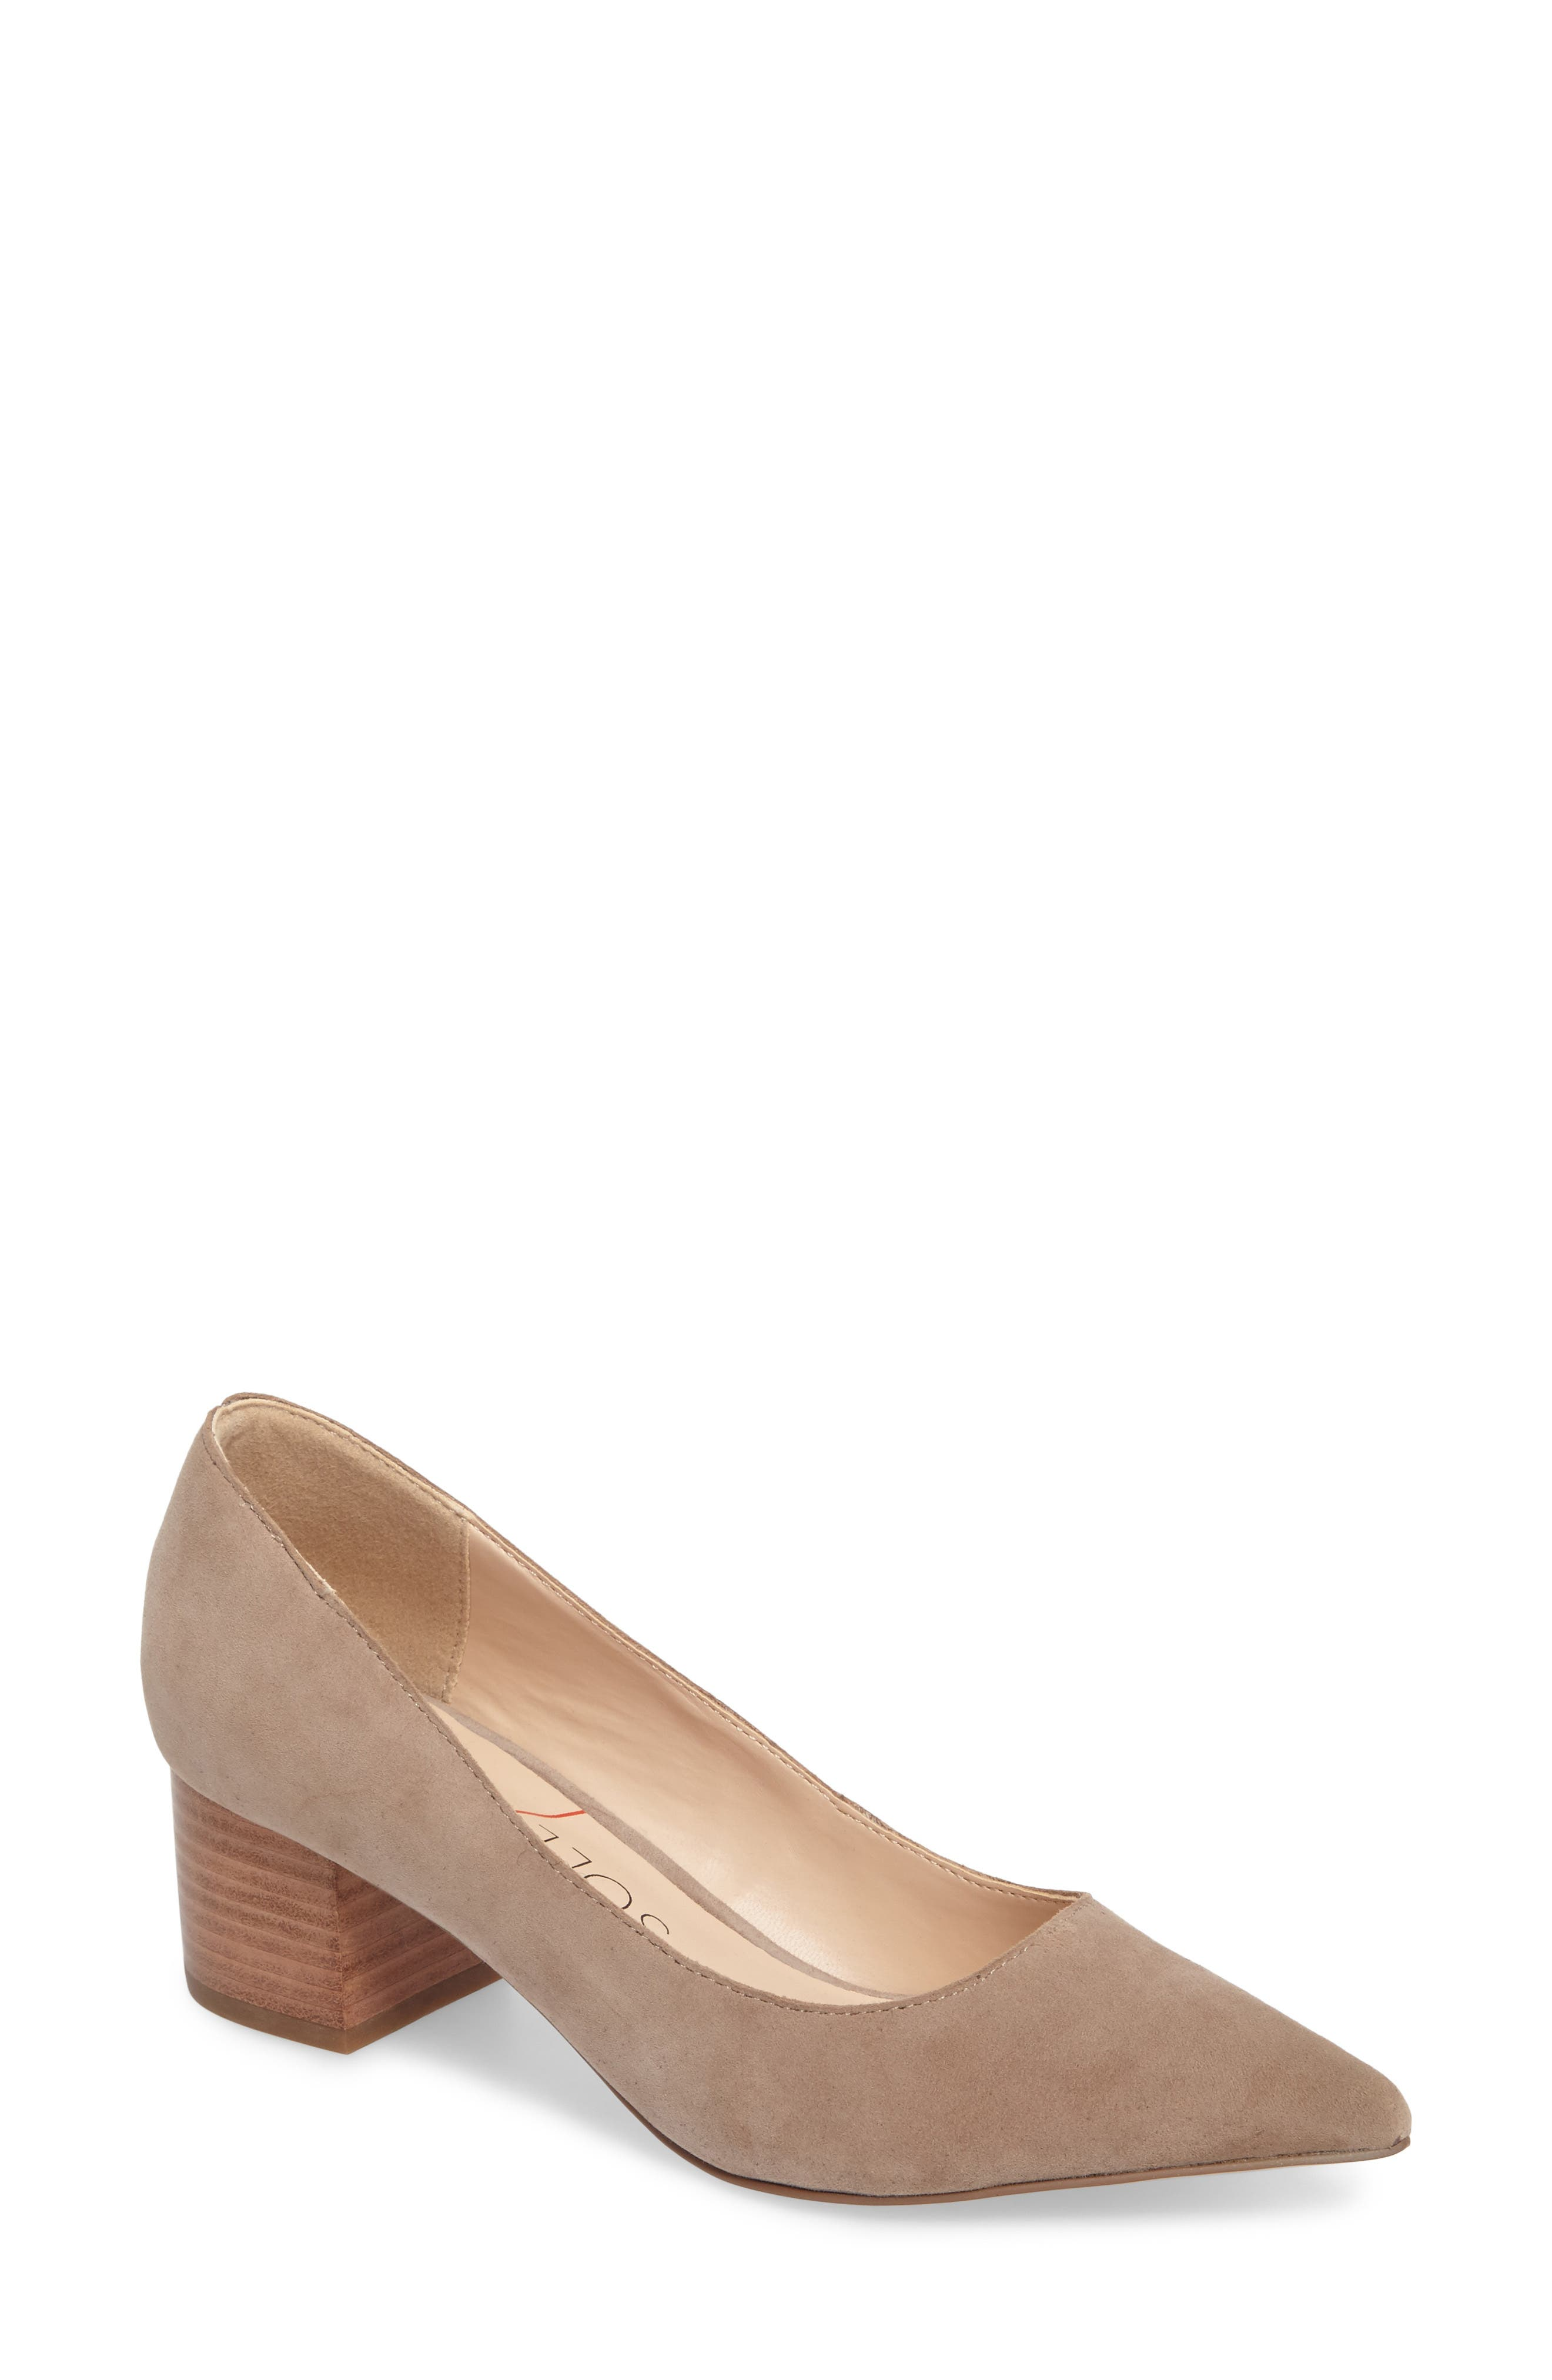 Andorra Genuine Calf Hair Pump,                             Main thumbnail 2, color,